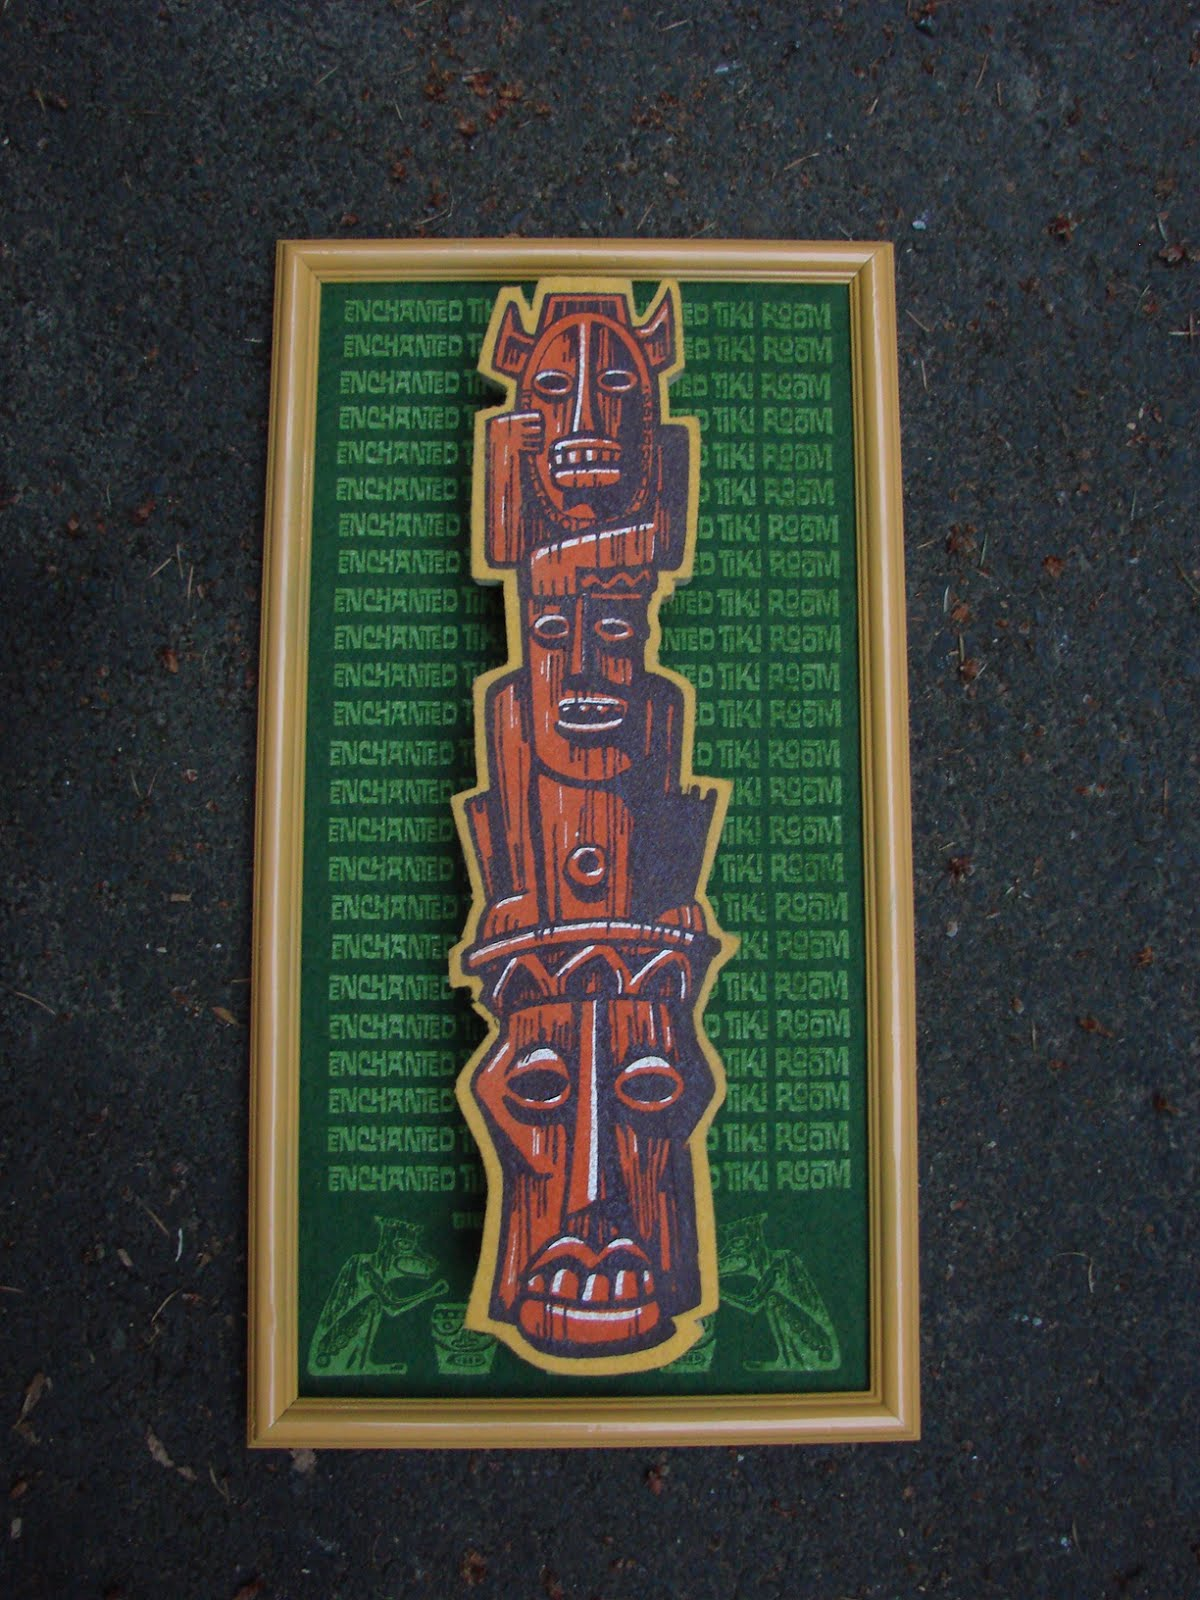 This is my entry for the Tiki Central art swap.